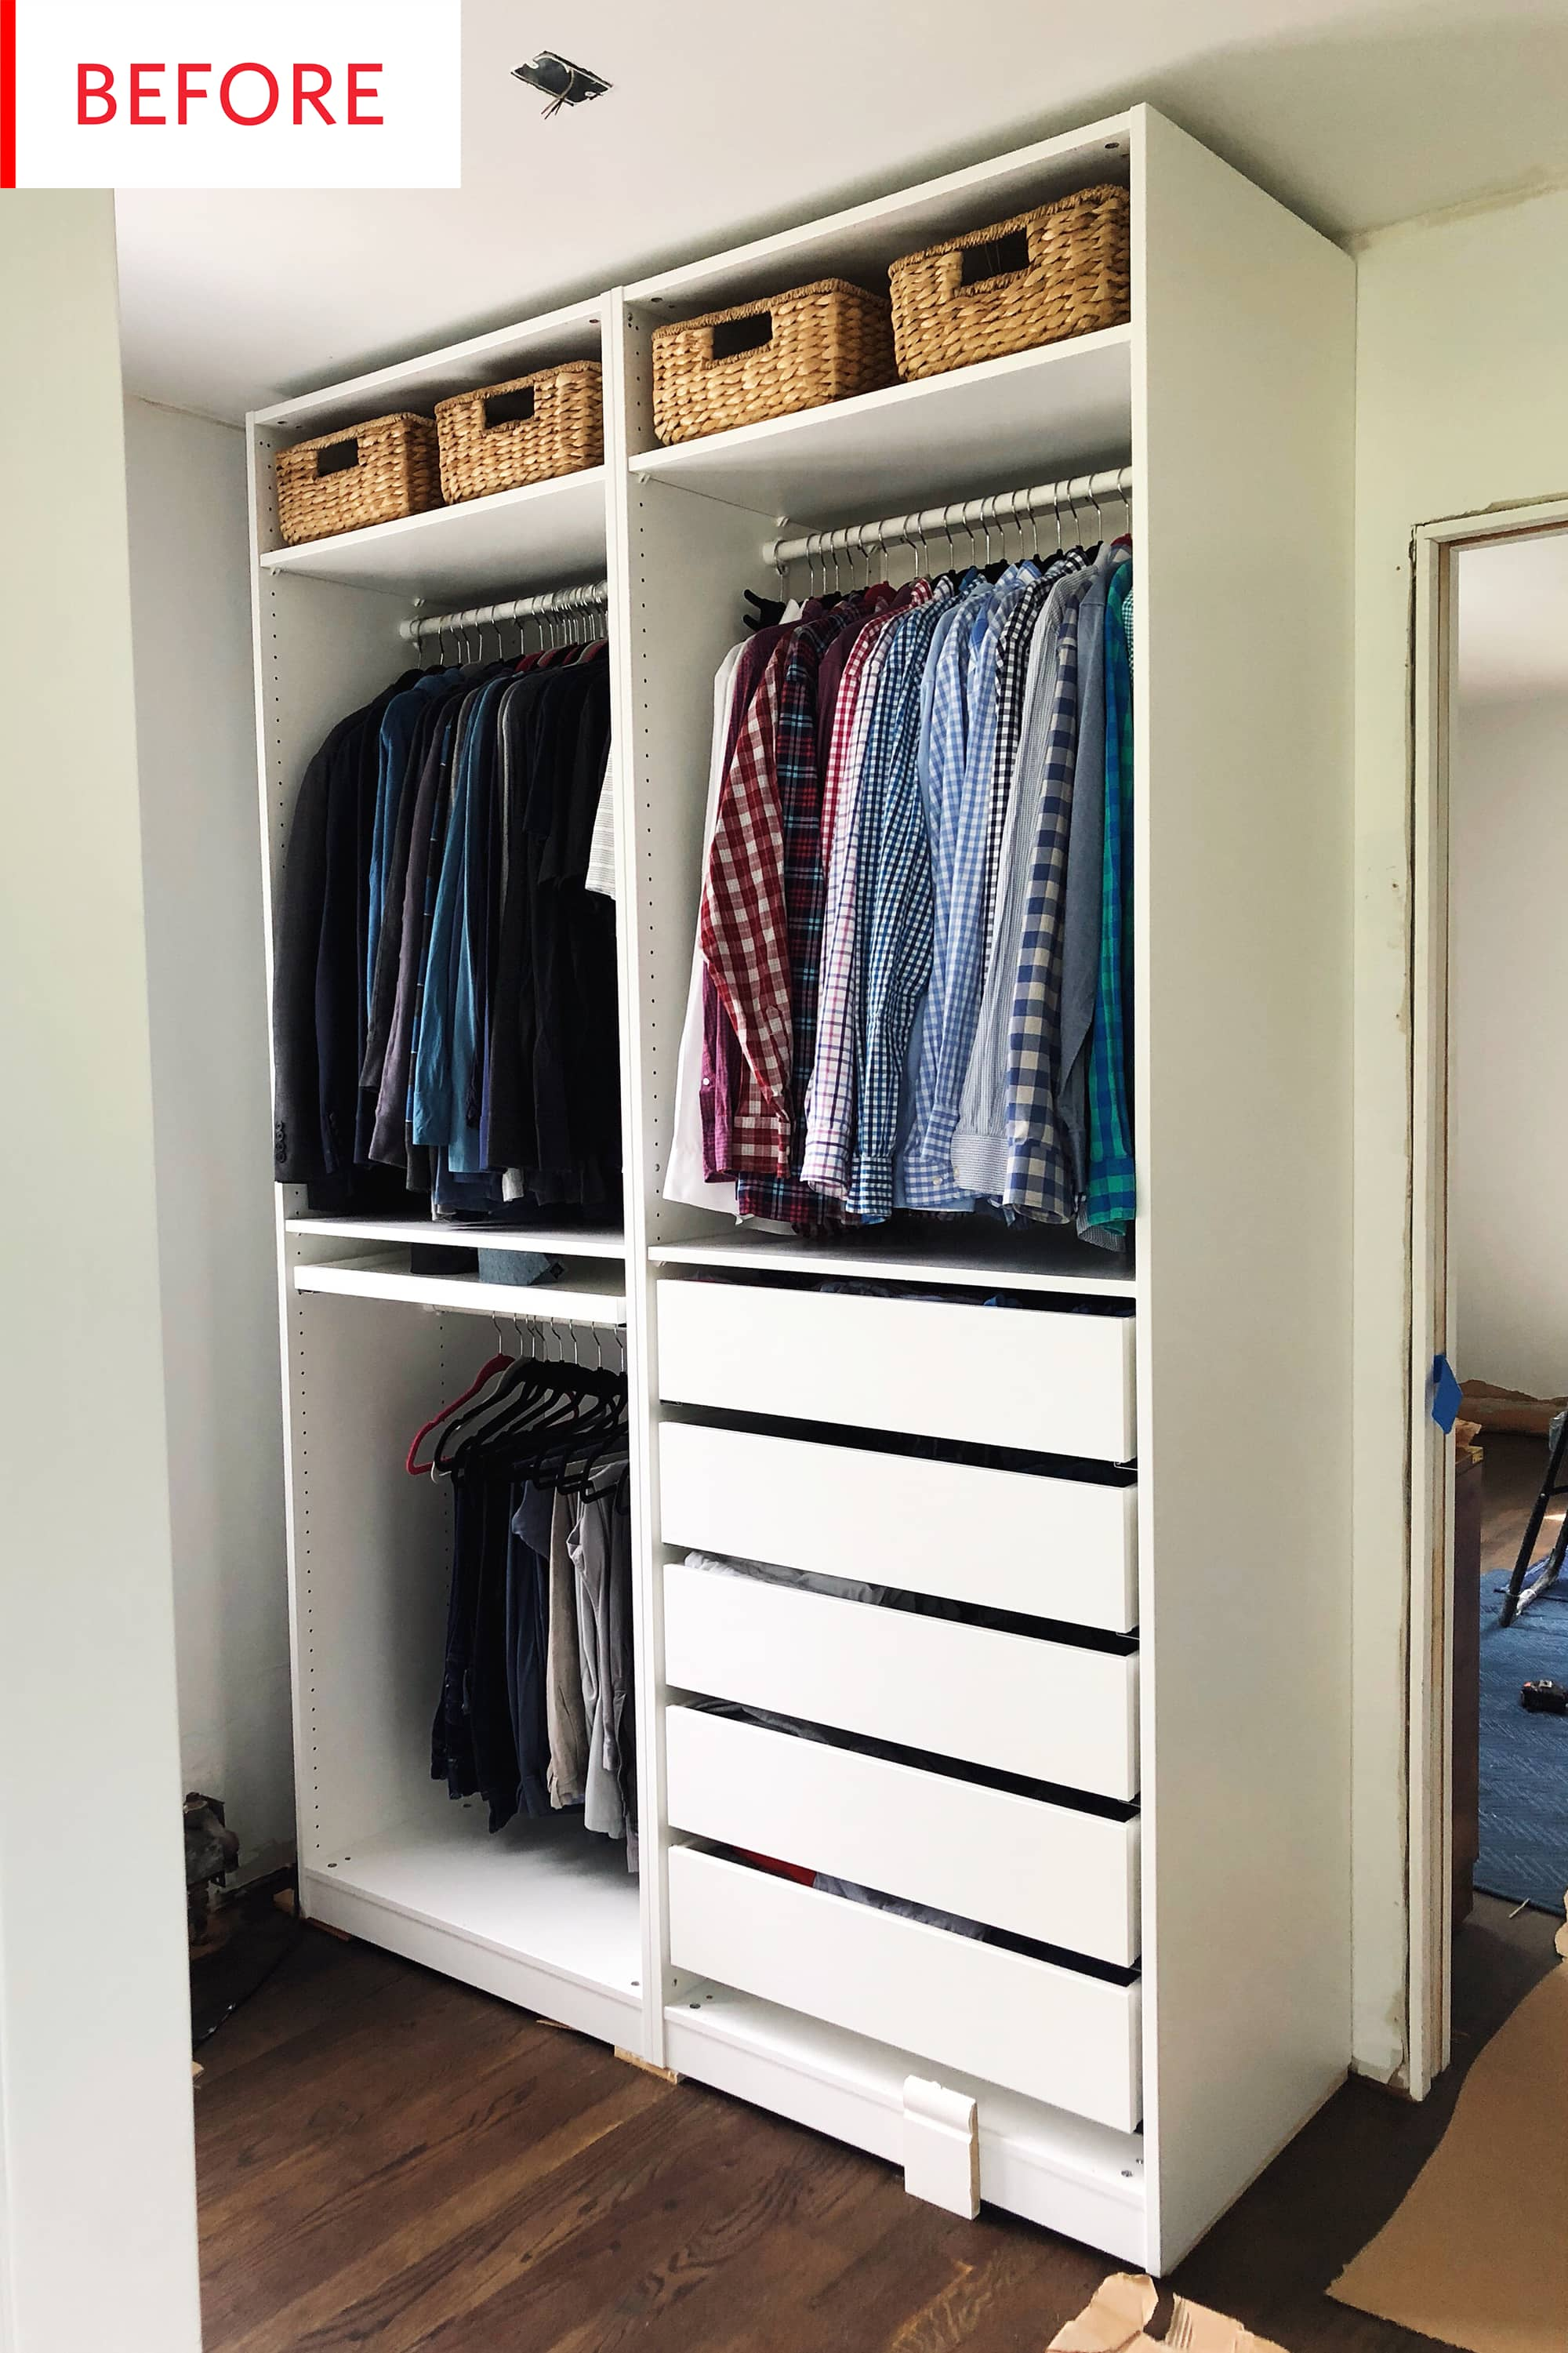 Smart Ikea Pax Closet Hack Before And After Photos Apartment Therapy